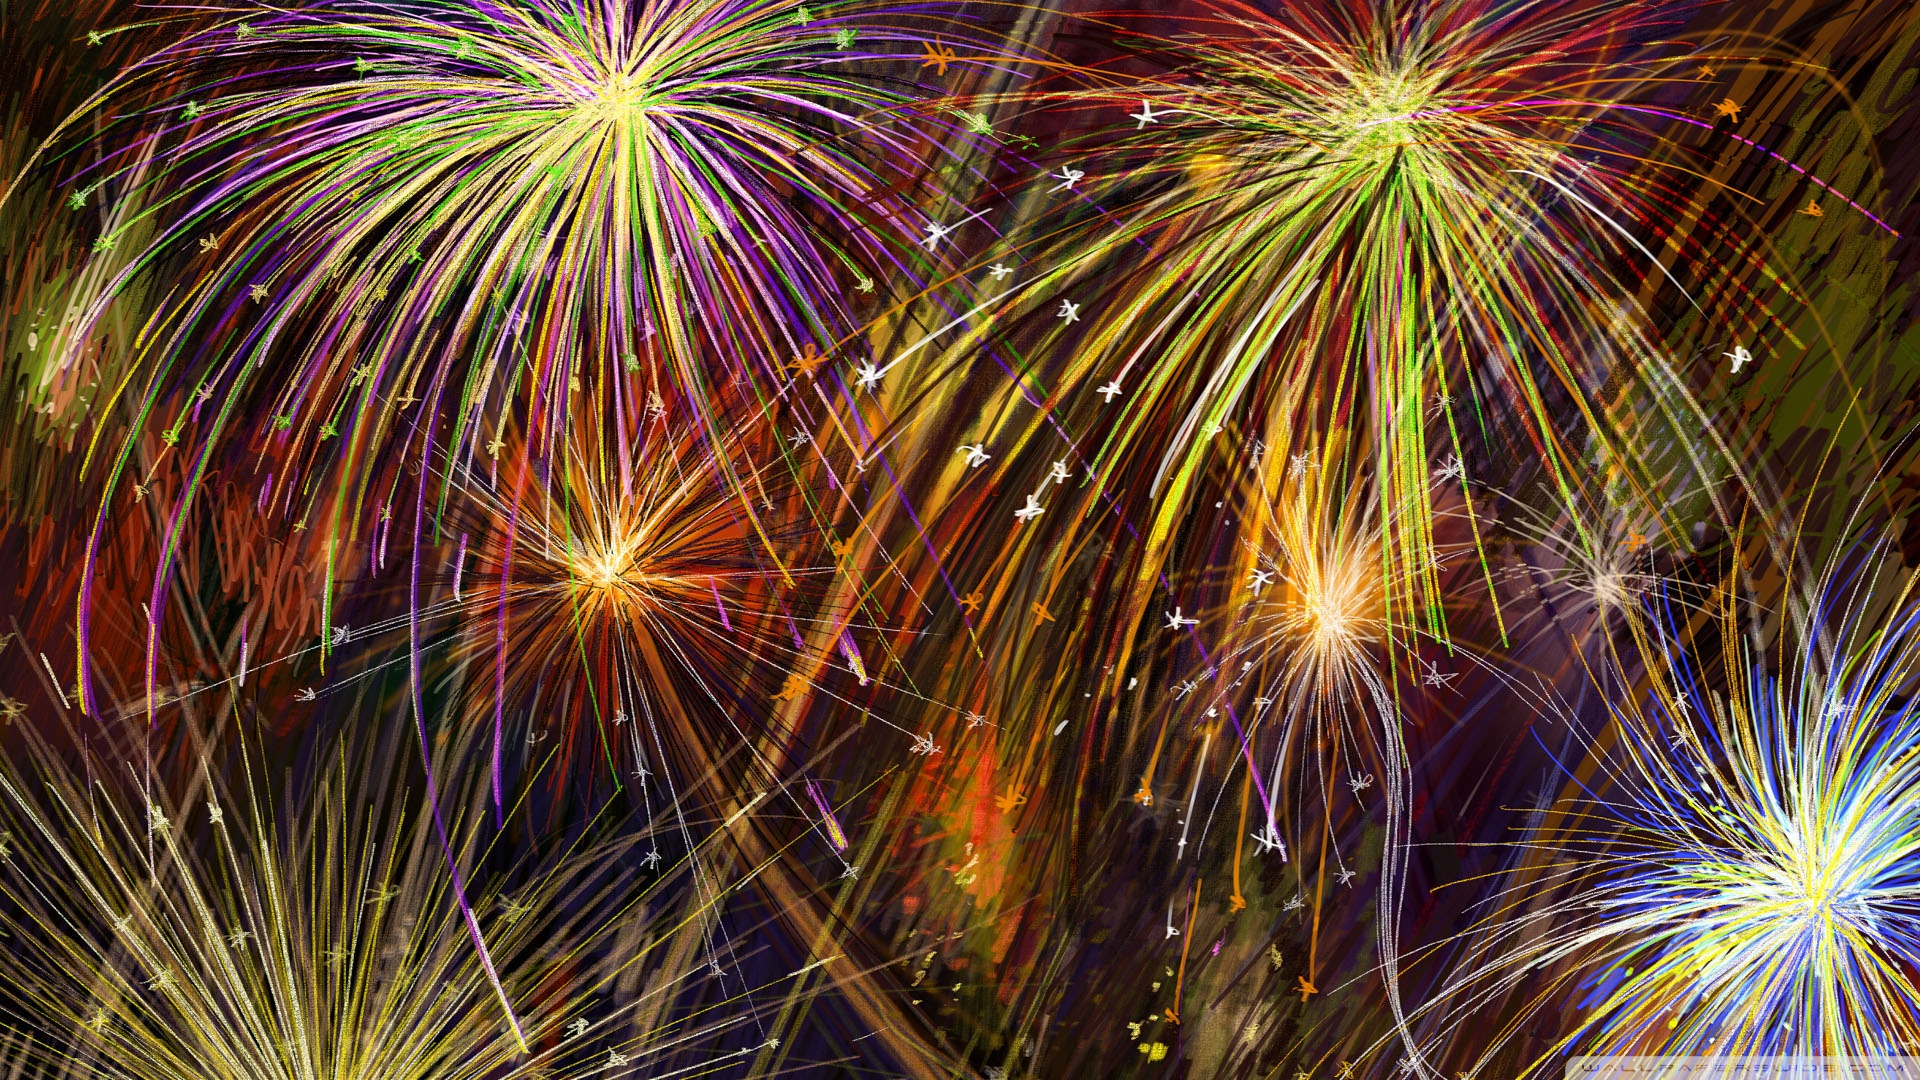 display wallpaper images,fireworks,nature,new years day,diwali,event